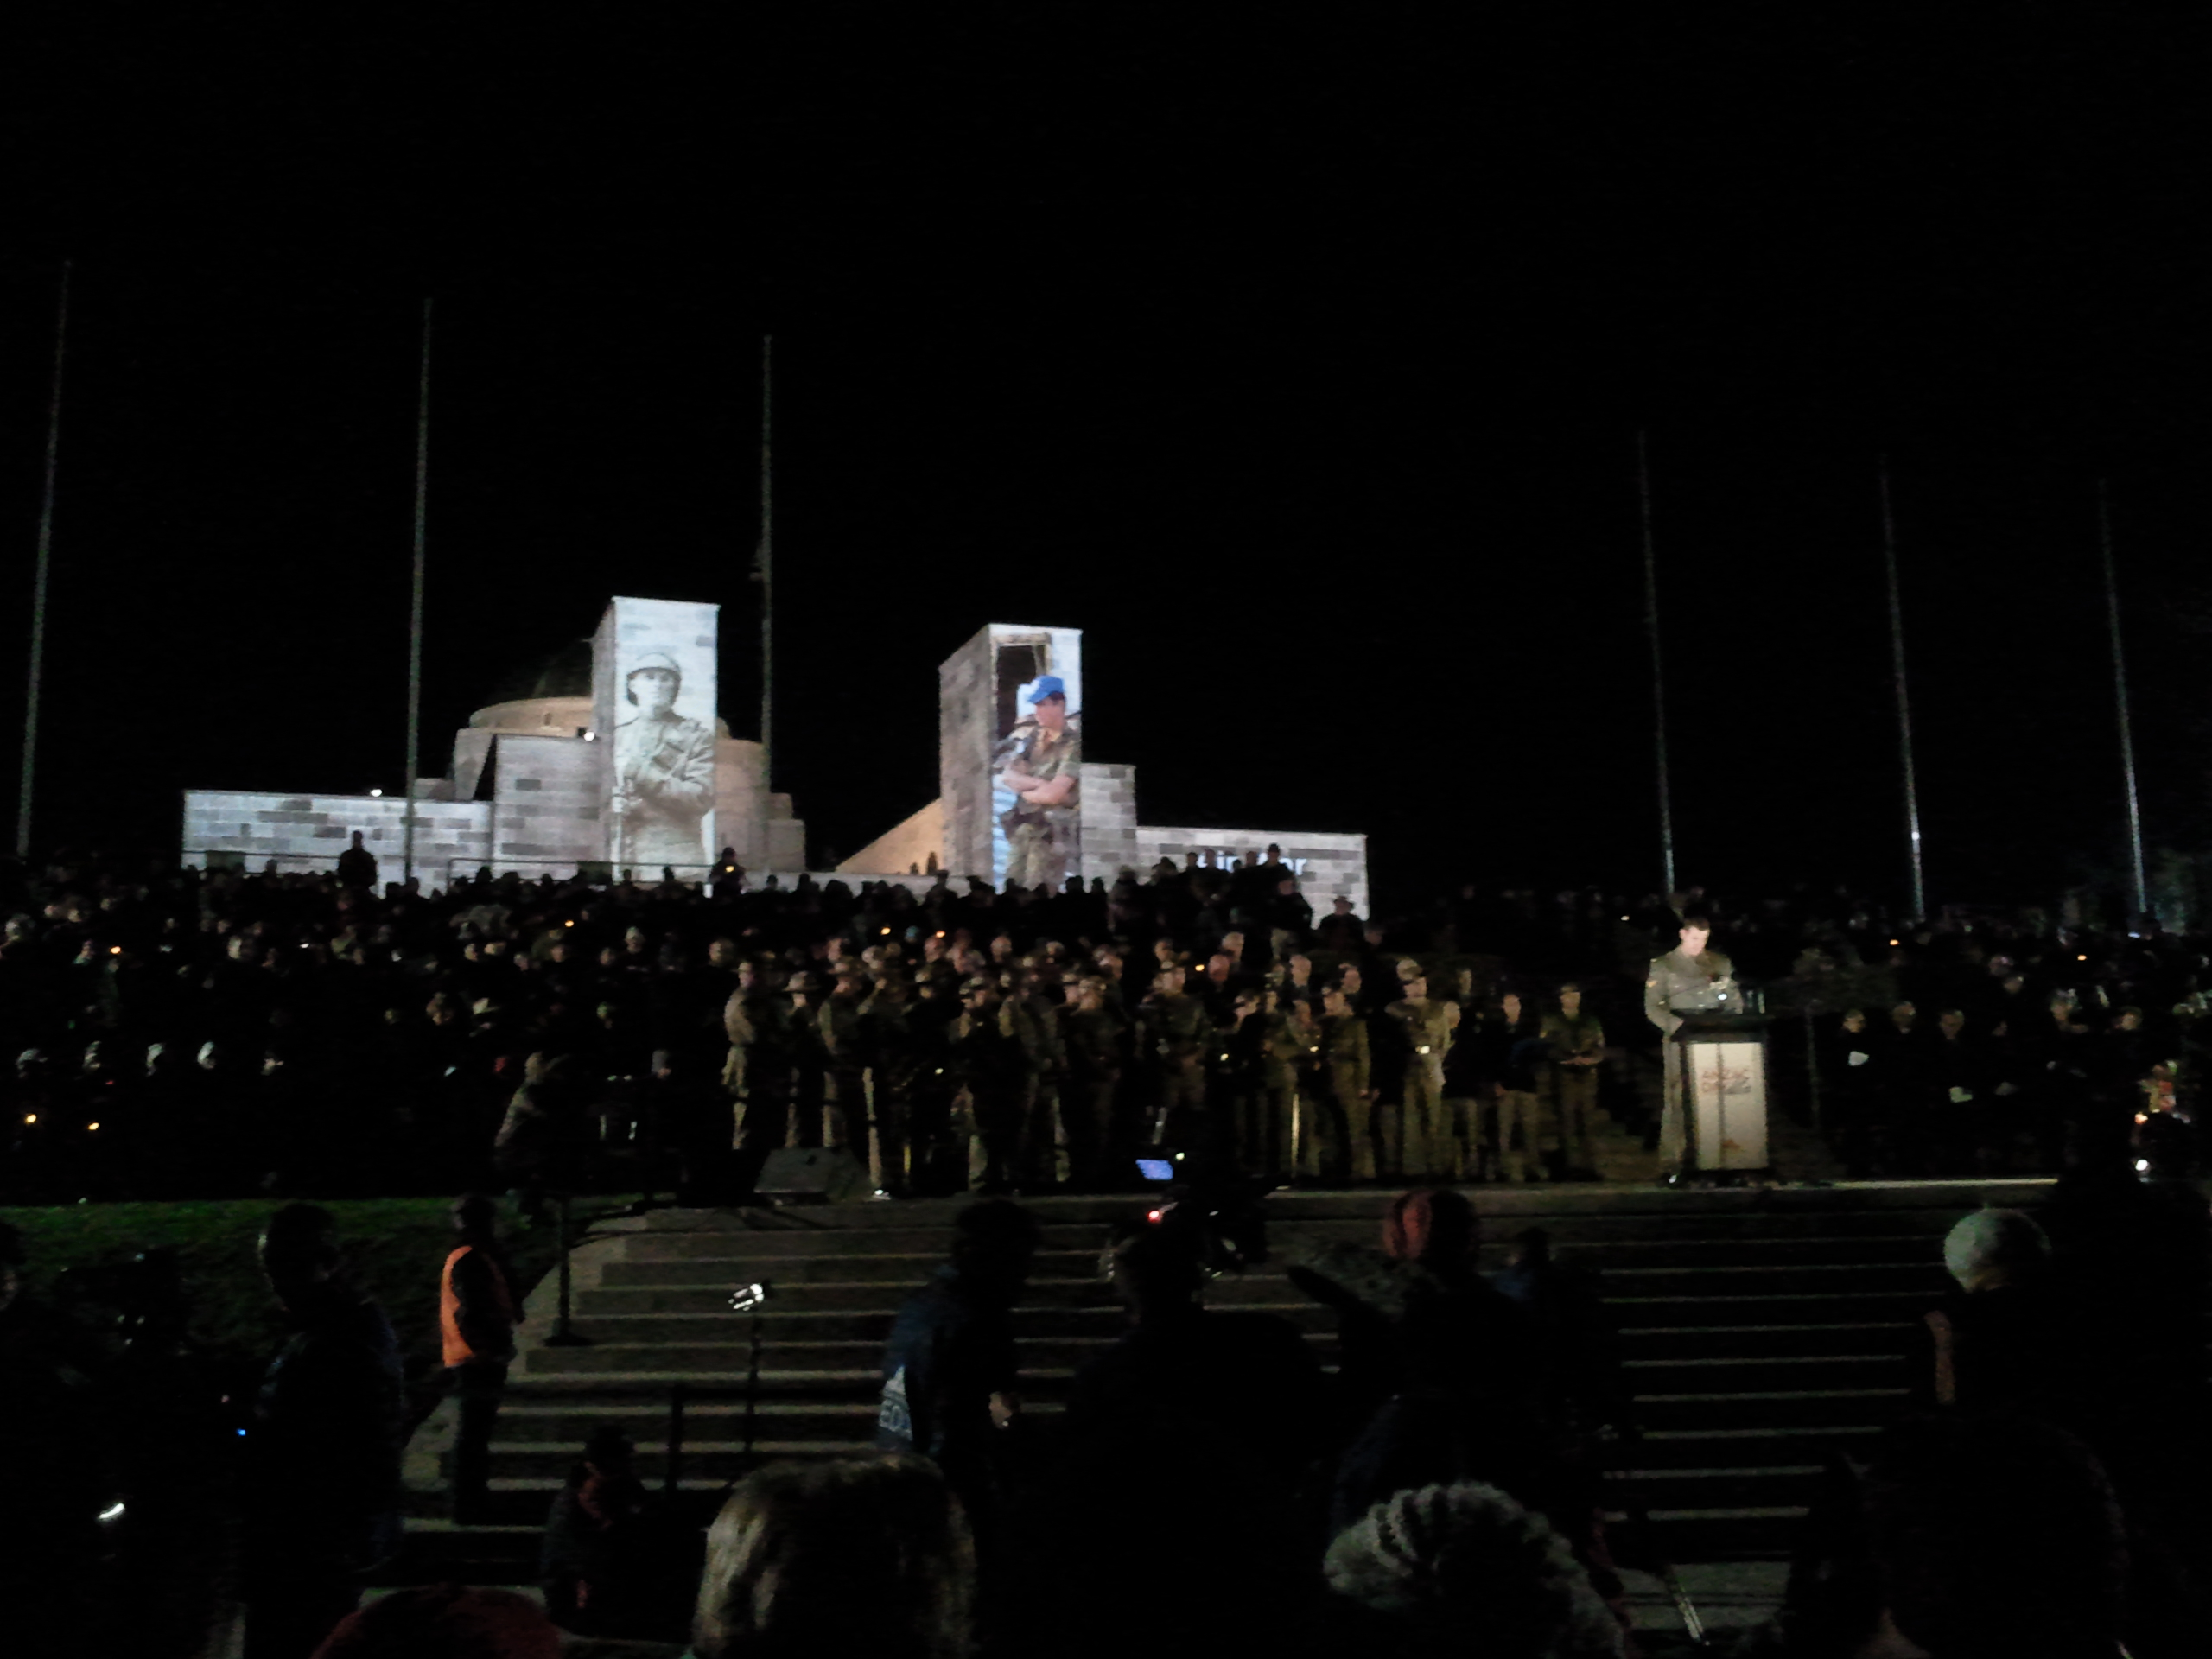 Anzac Day dawn service at the Australian War Memorial in Canberra, Australia, on April 25, 2013. The crowd of around 35,000 people are addressed by Corporal Ben Roberts-Smith VC who is reading stories and anecdotes from Australian service men and women relating to the war in Afghanistan.